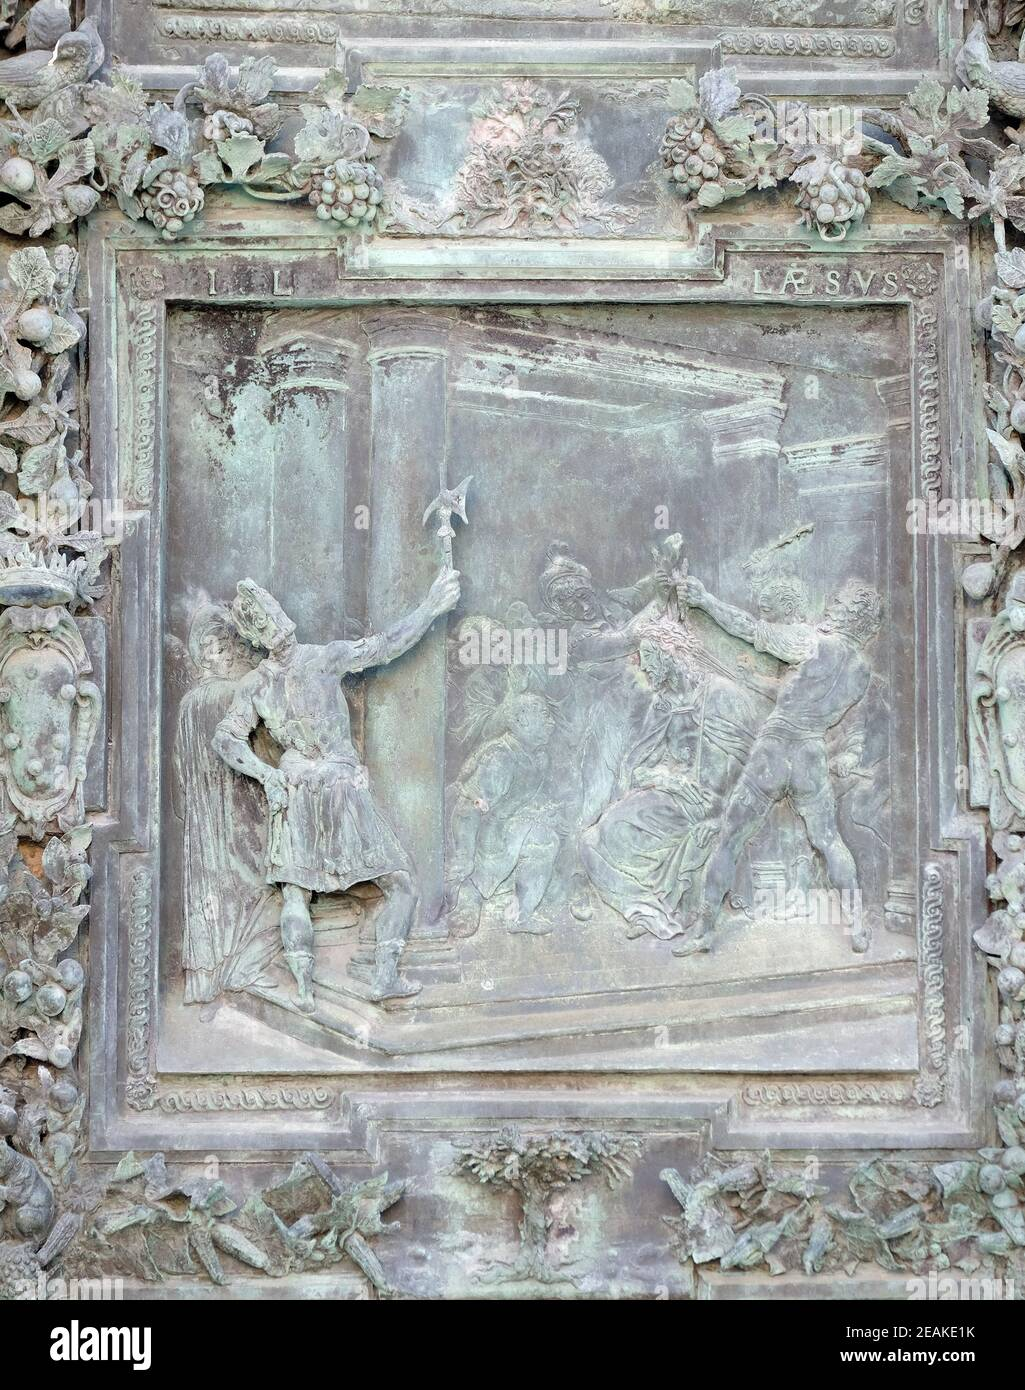 Christ Crowned with Thorns, sculpture work from Giambologna's school, portal of the Cathedral St. Mary of the Assumption in Pisa, Italy Stock Photo